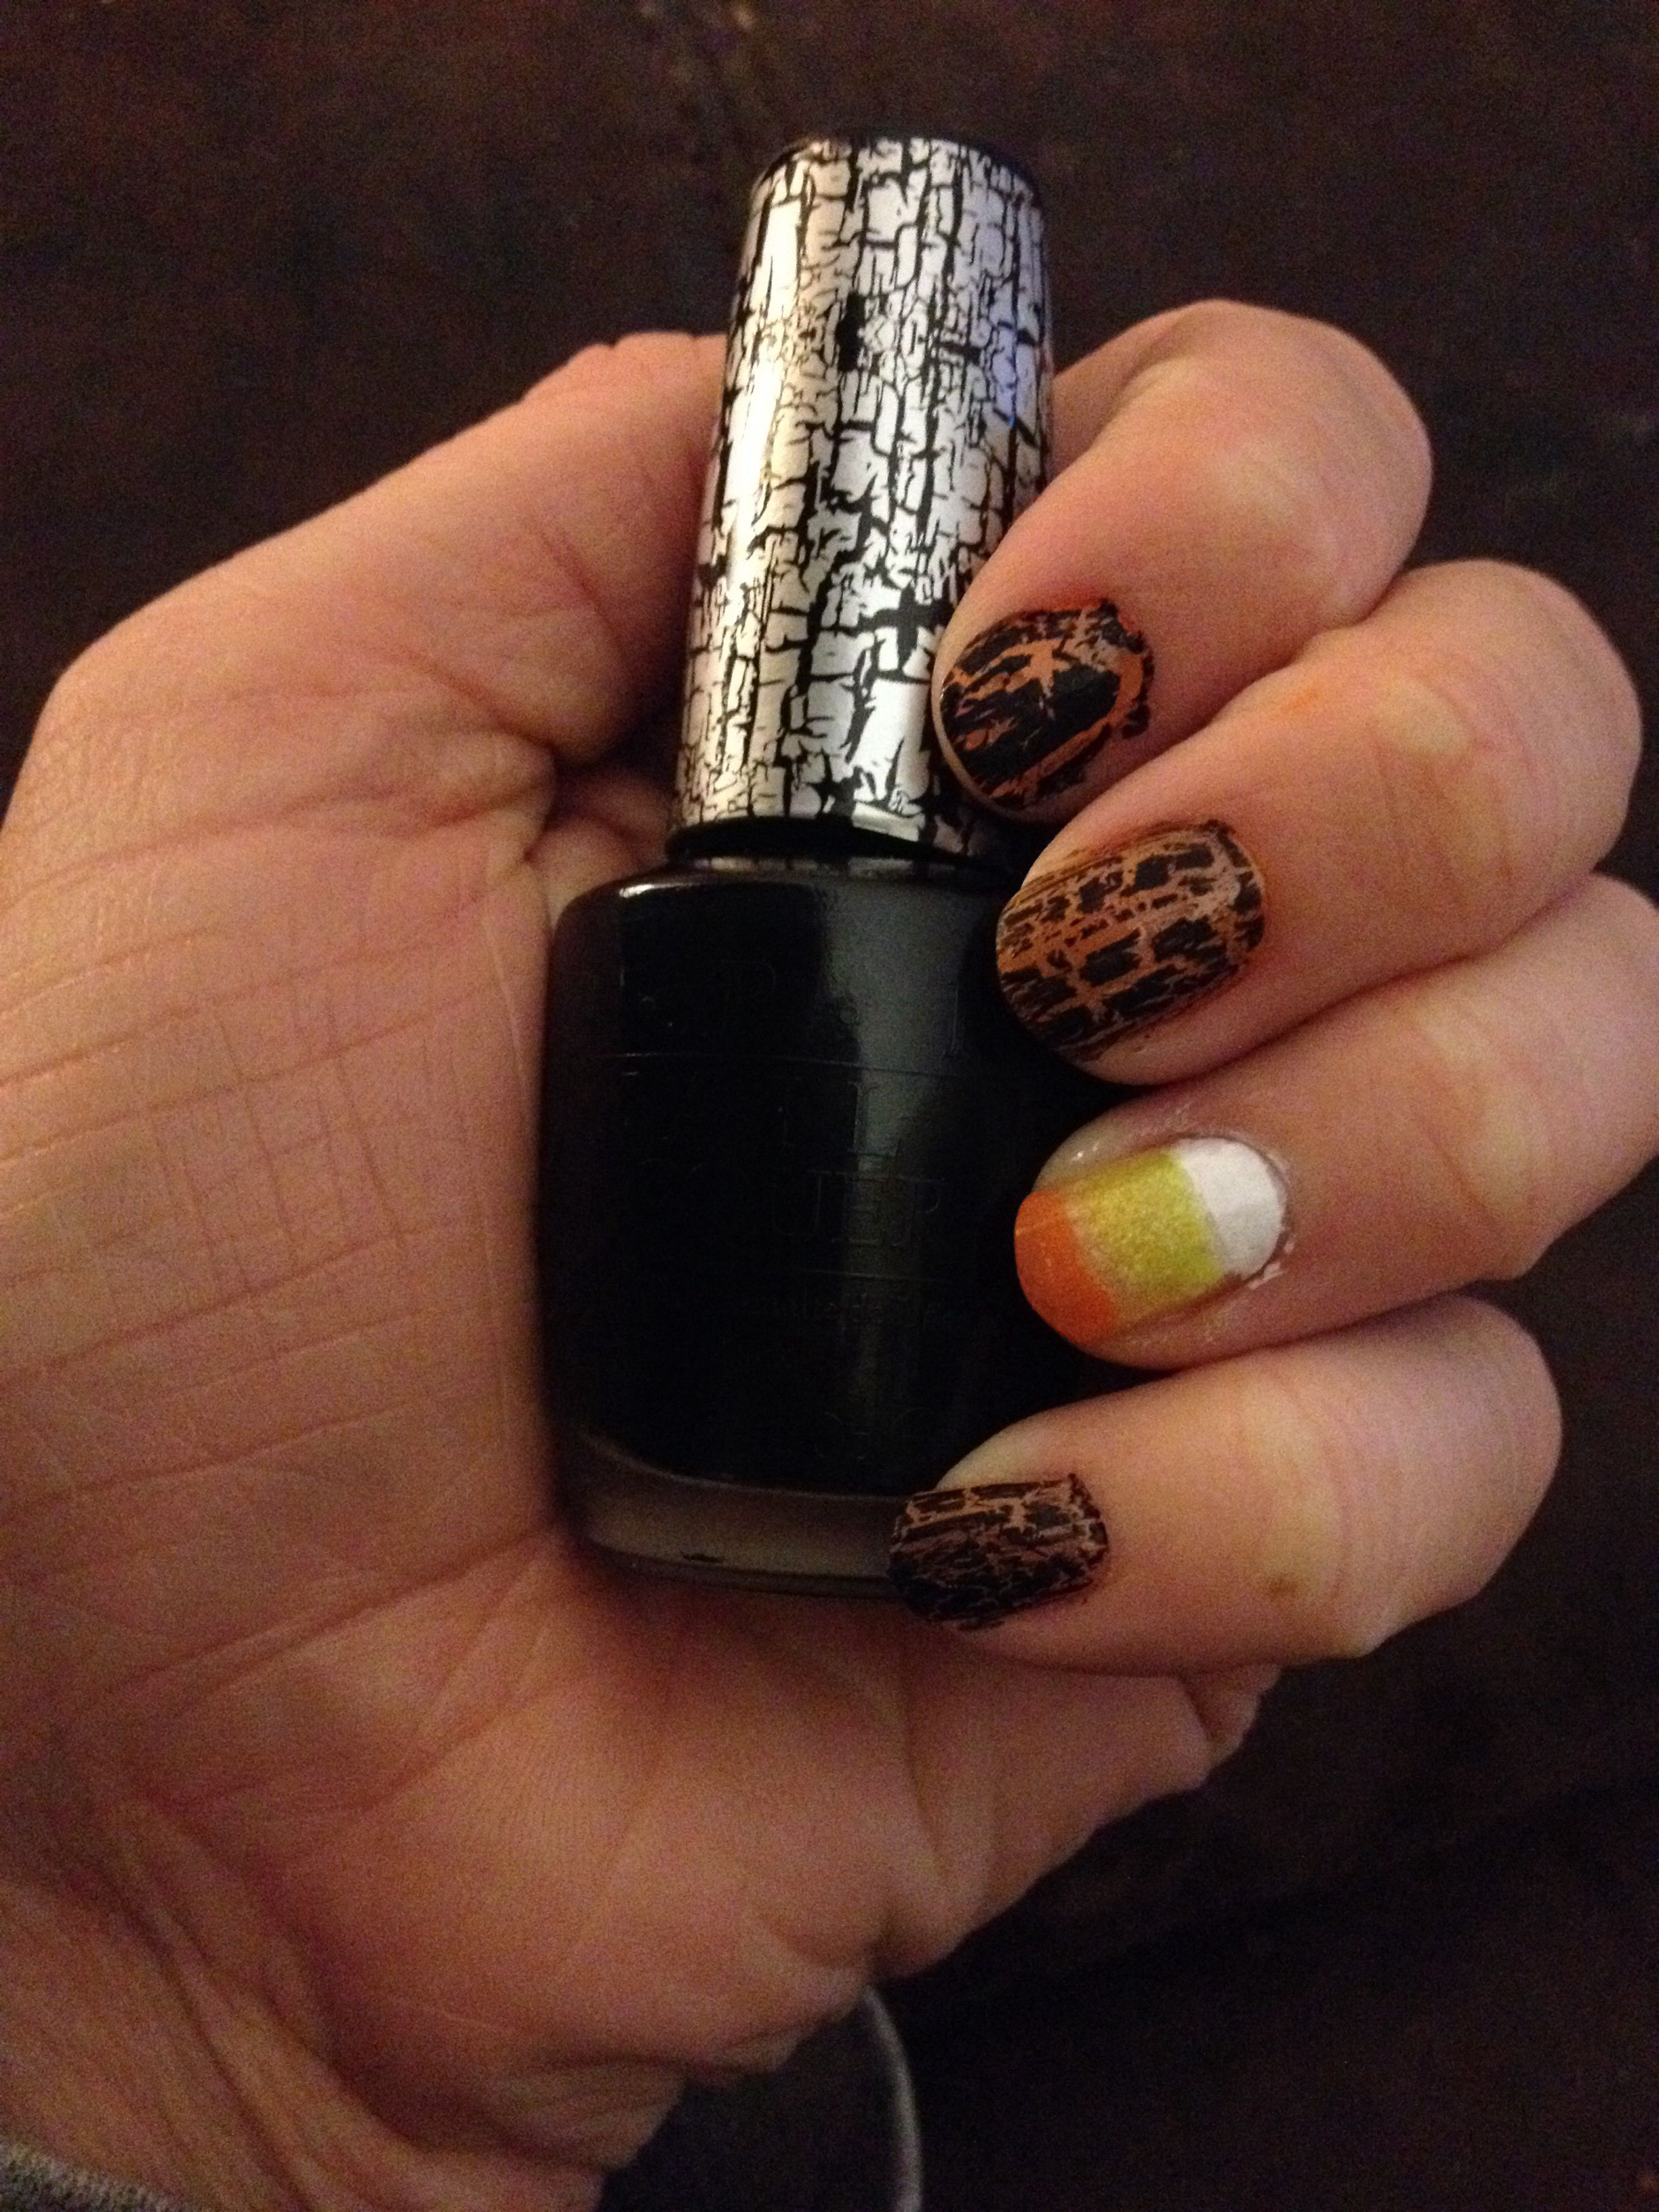 Opi in black shatter | My nail polish collection | Jewelry, Nail